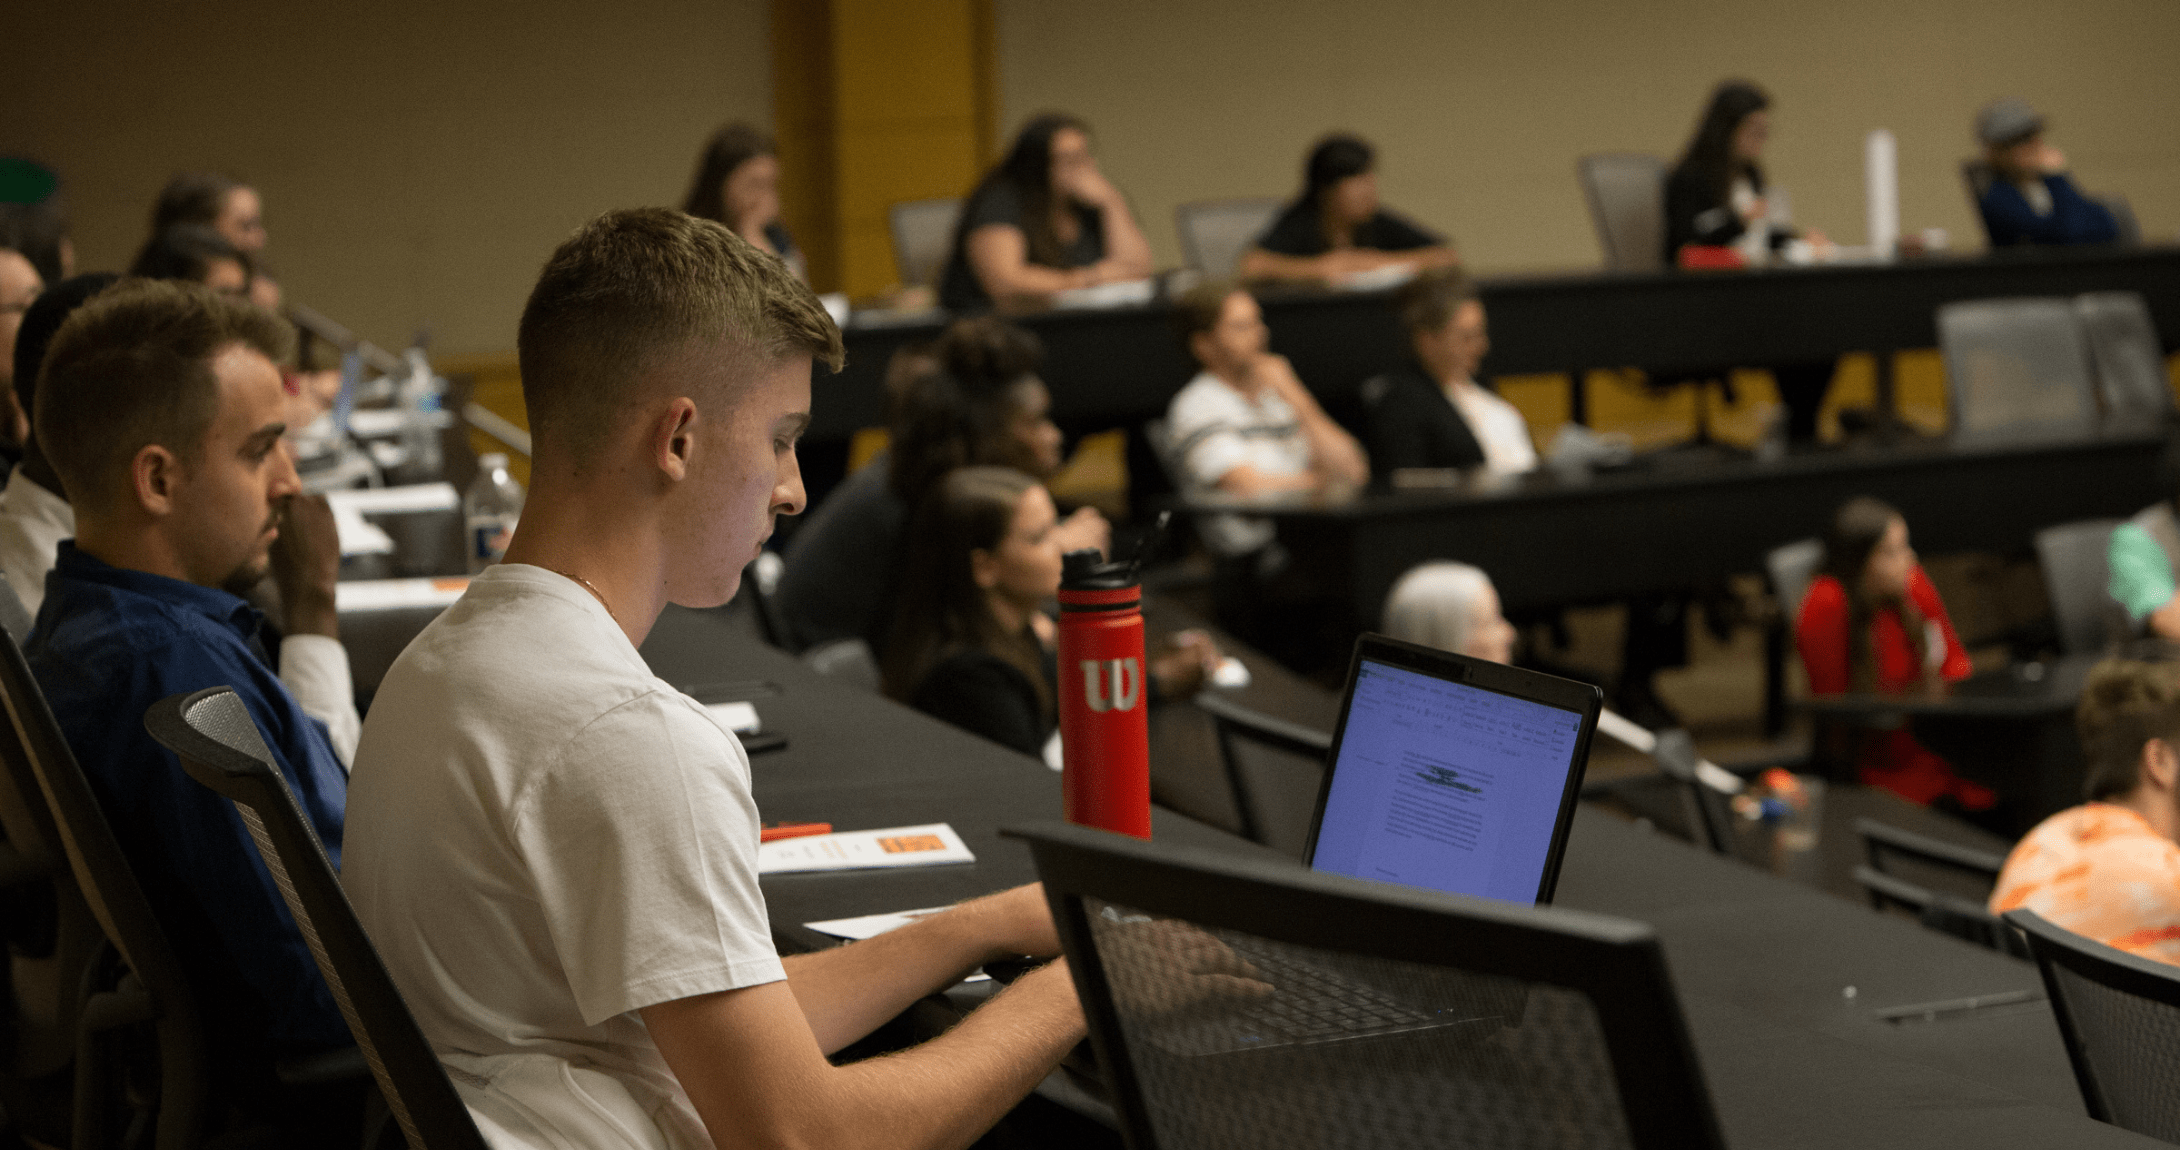 student on computer in lecture hall